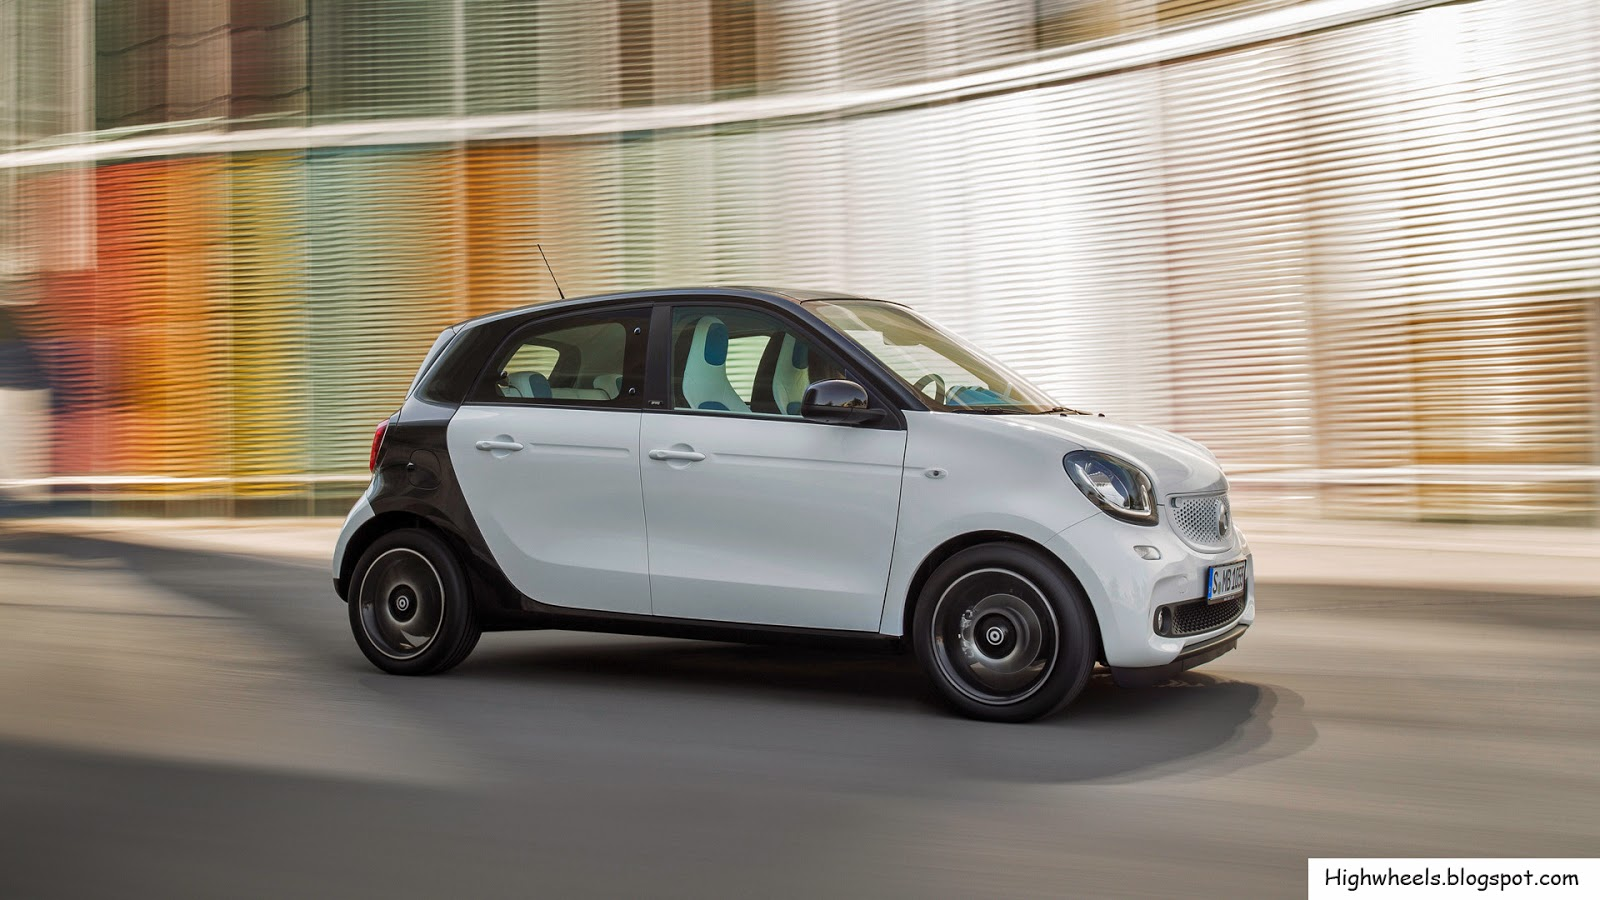 2015 smart forfour high wheels. Black Bedroom Furniture Sets. Home Design Ideas